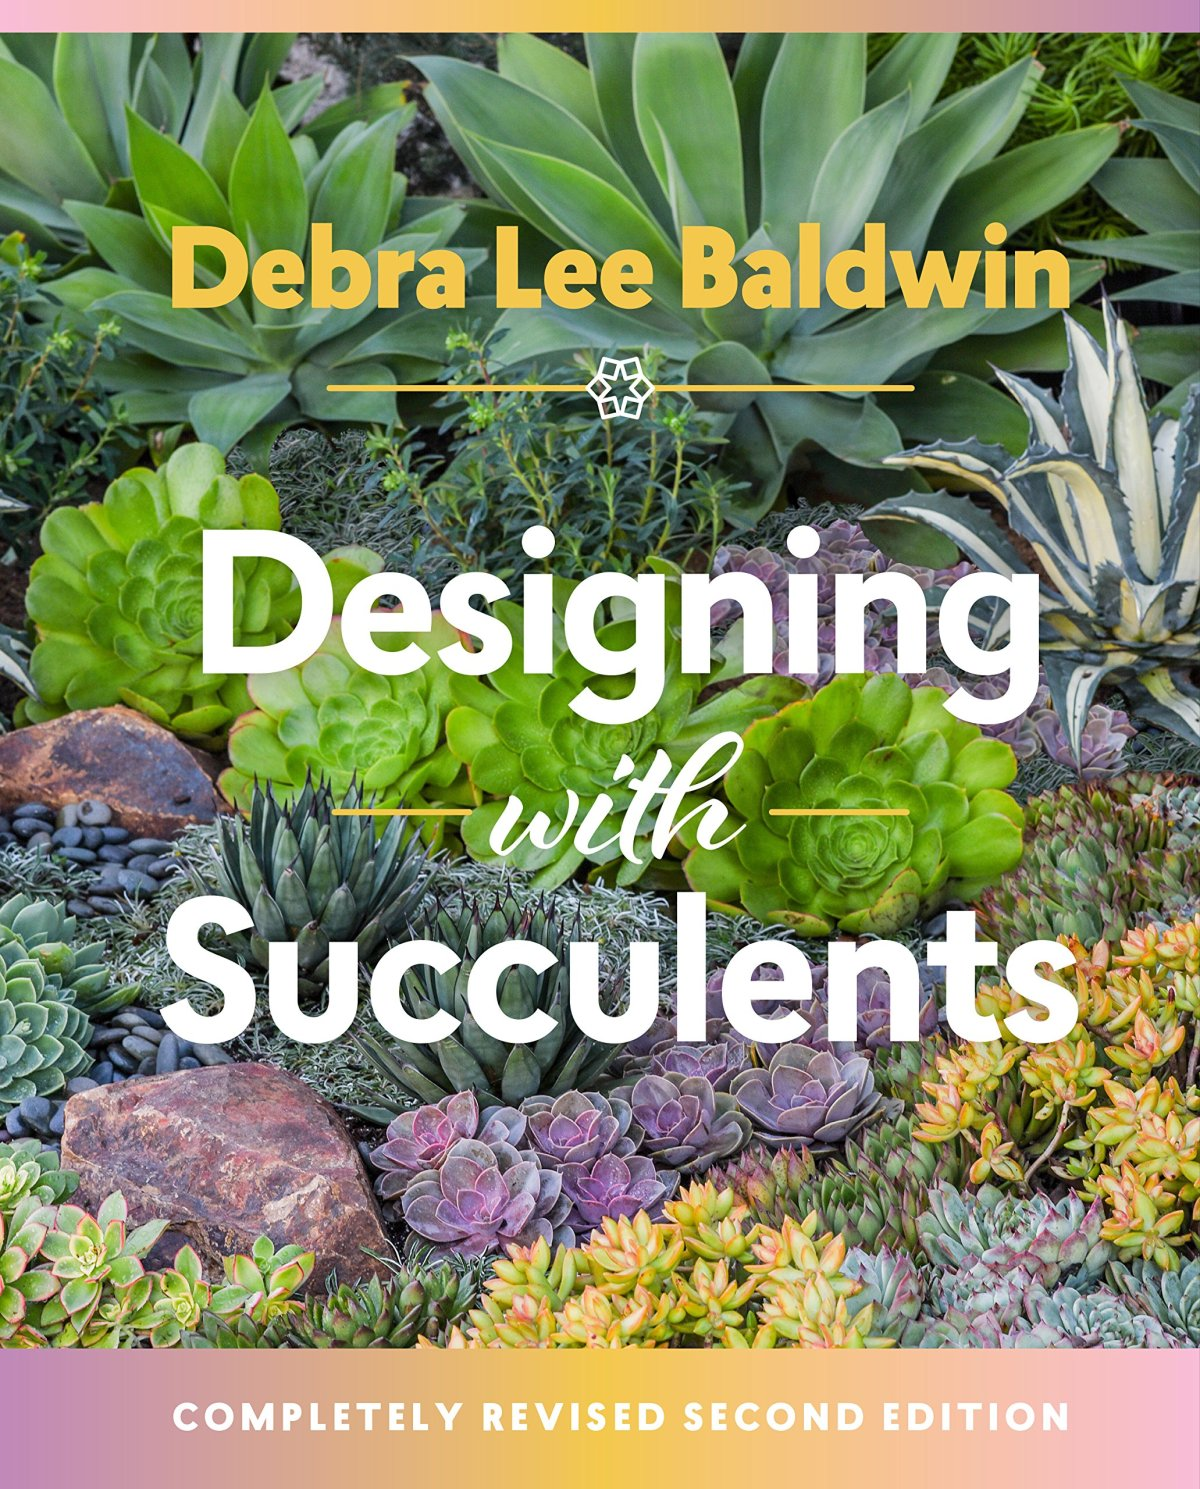 Designing with Succulents by Debra Lee Baldwin